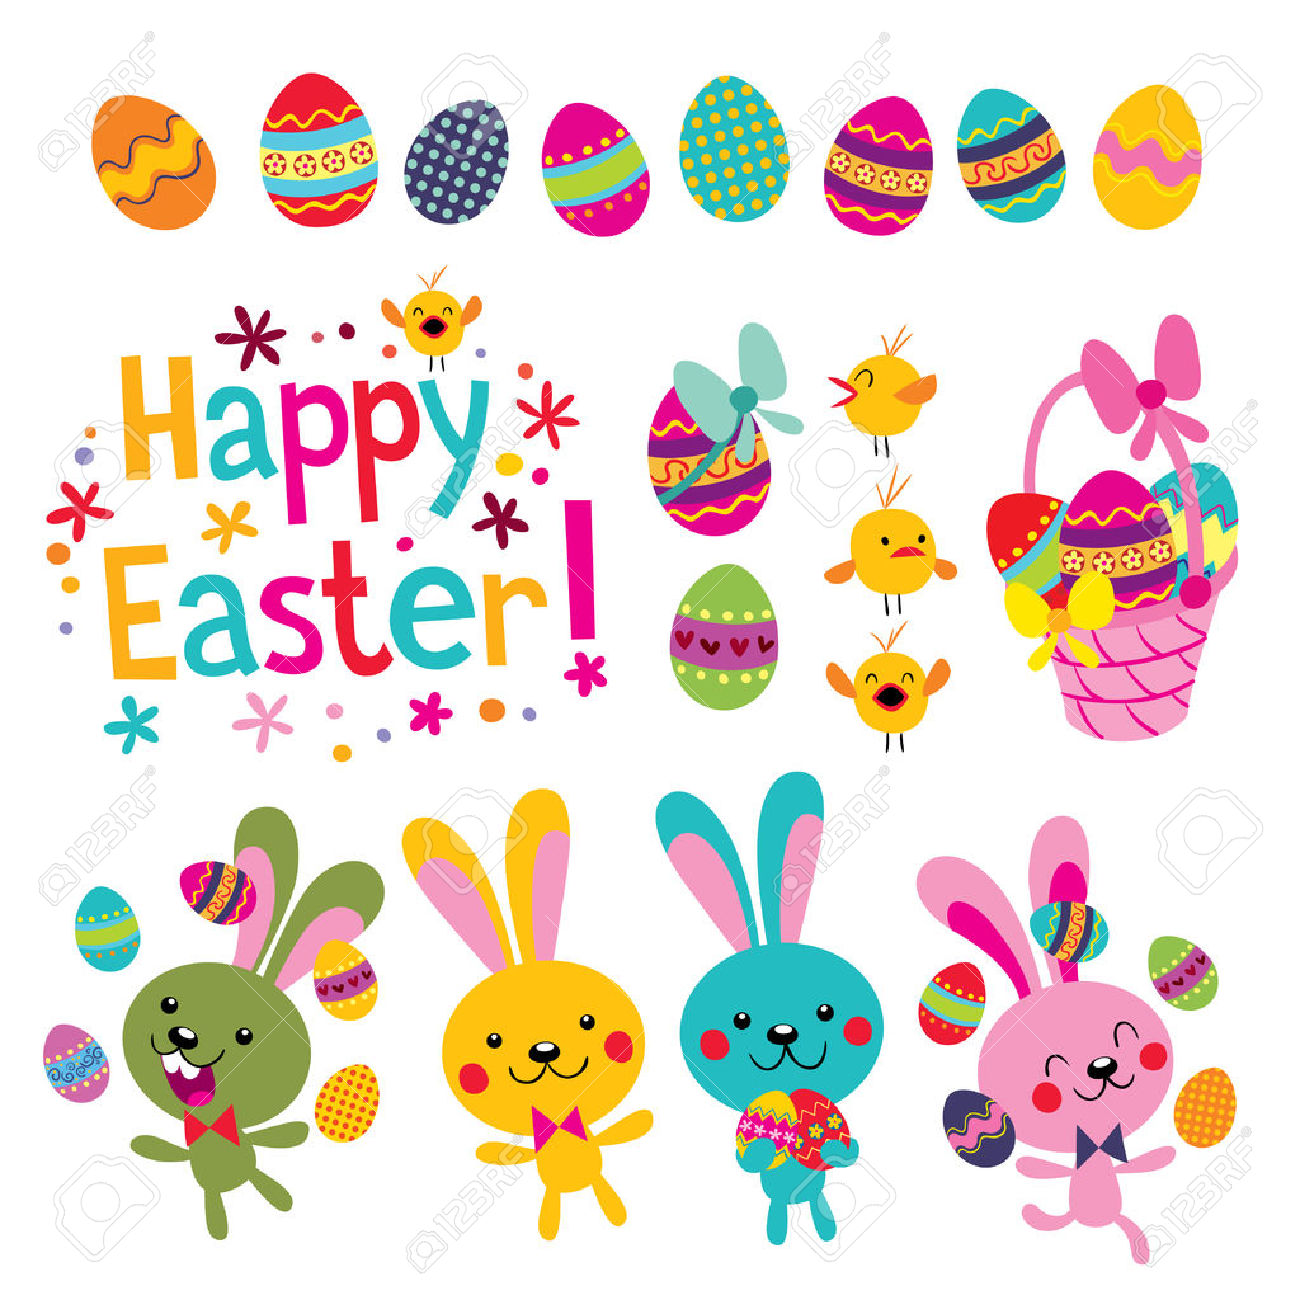 Happy easter basket clipart image free library 13,656 Easter Basket Cliparts, Stock Vector And Royalty Free ... image free library